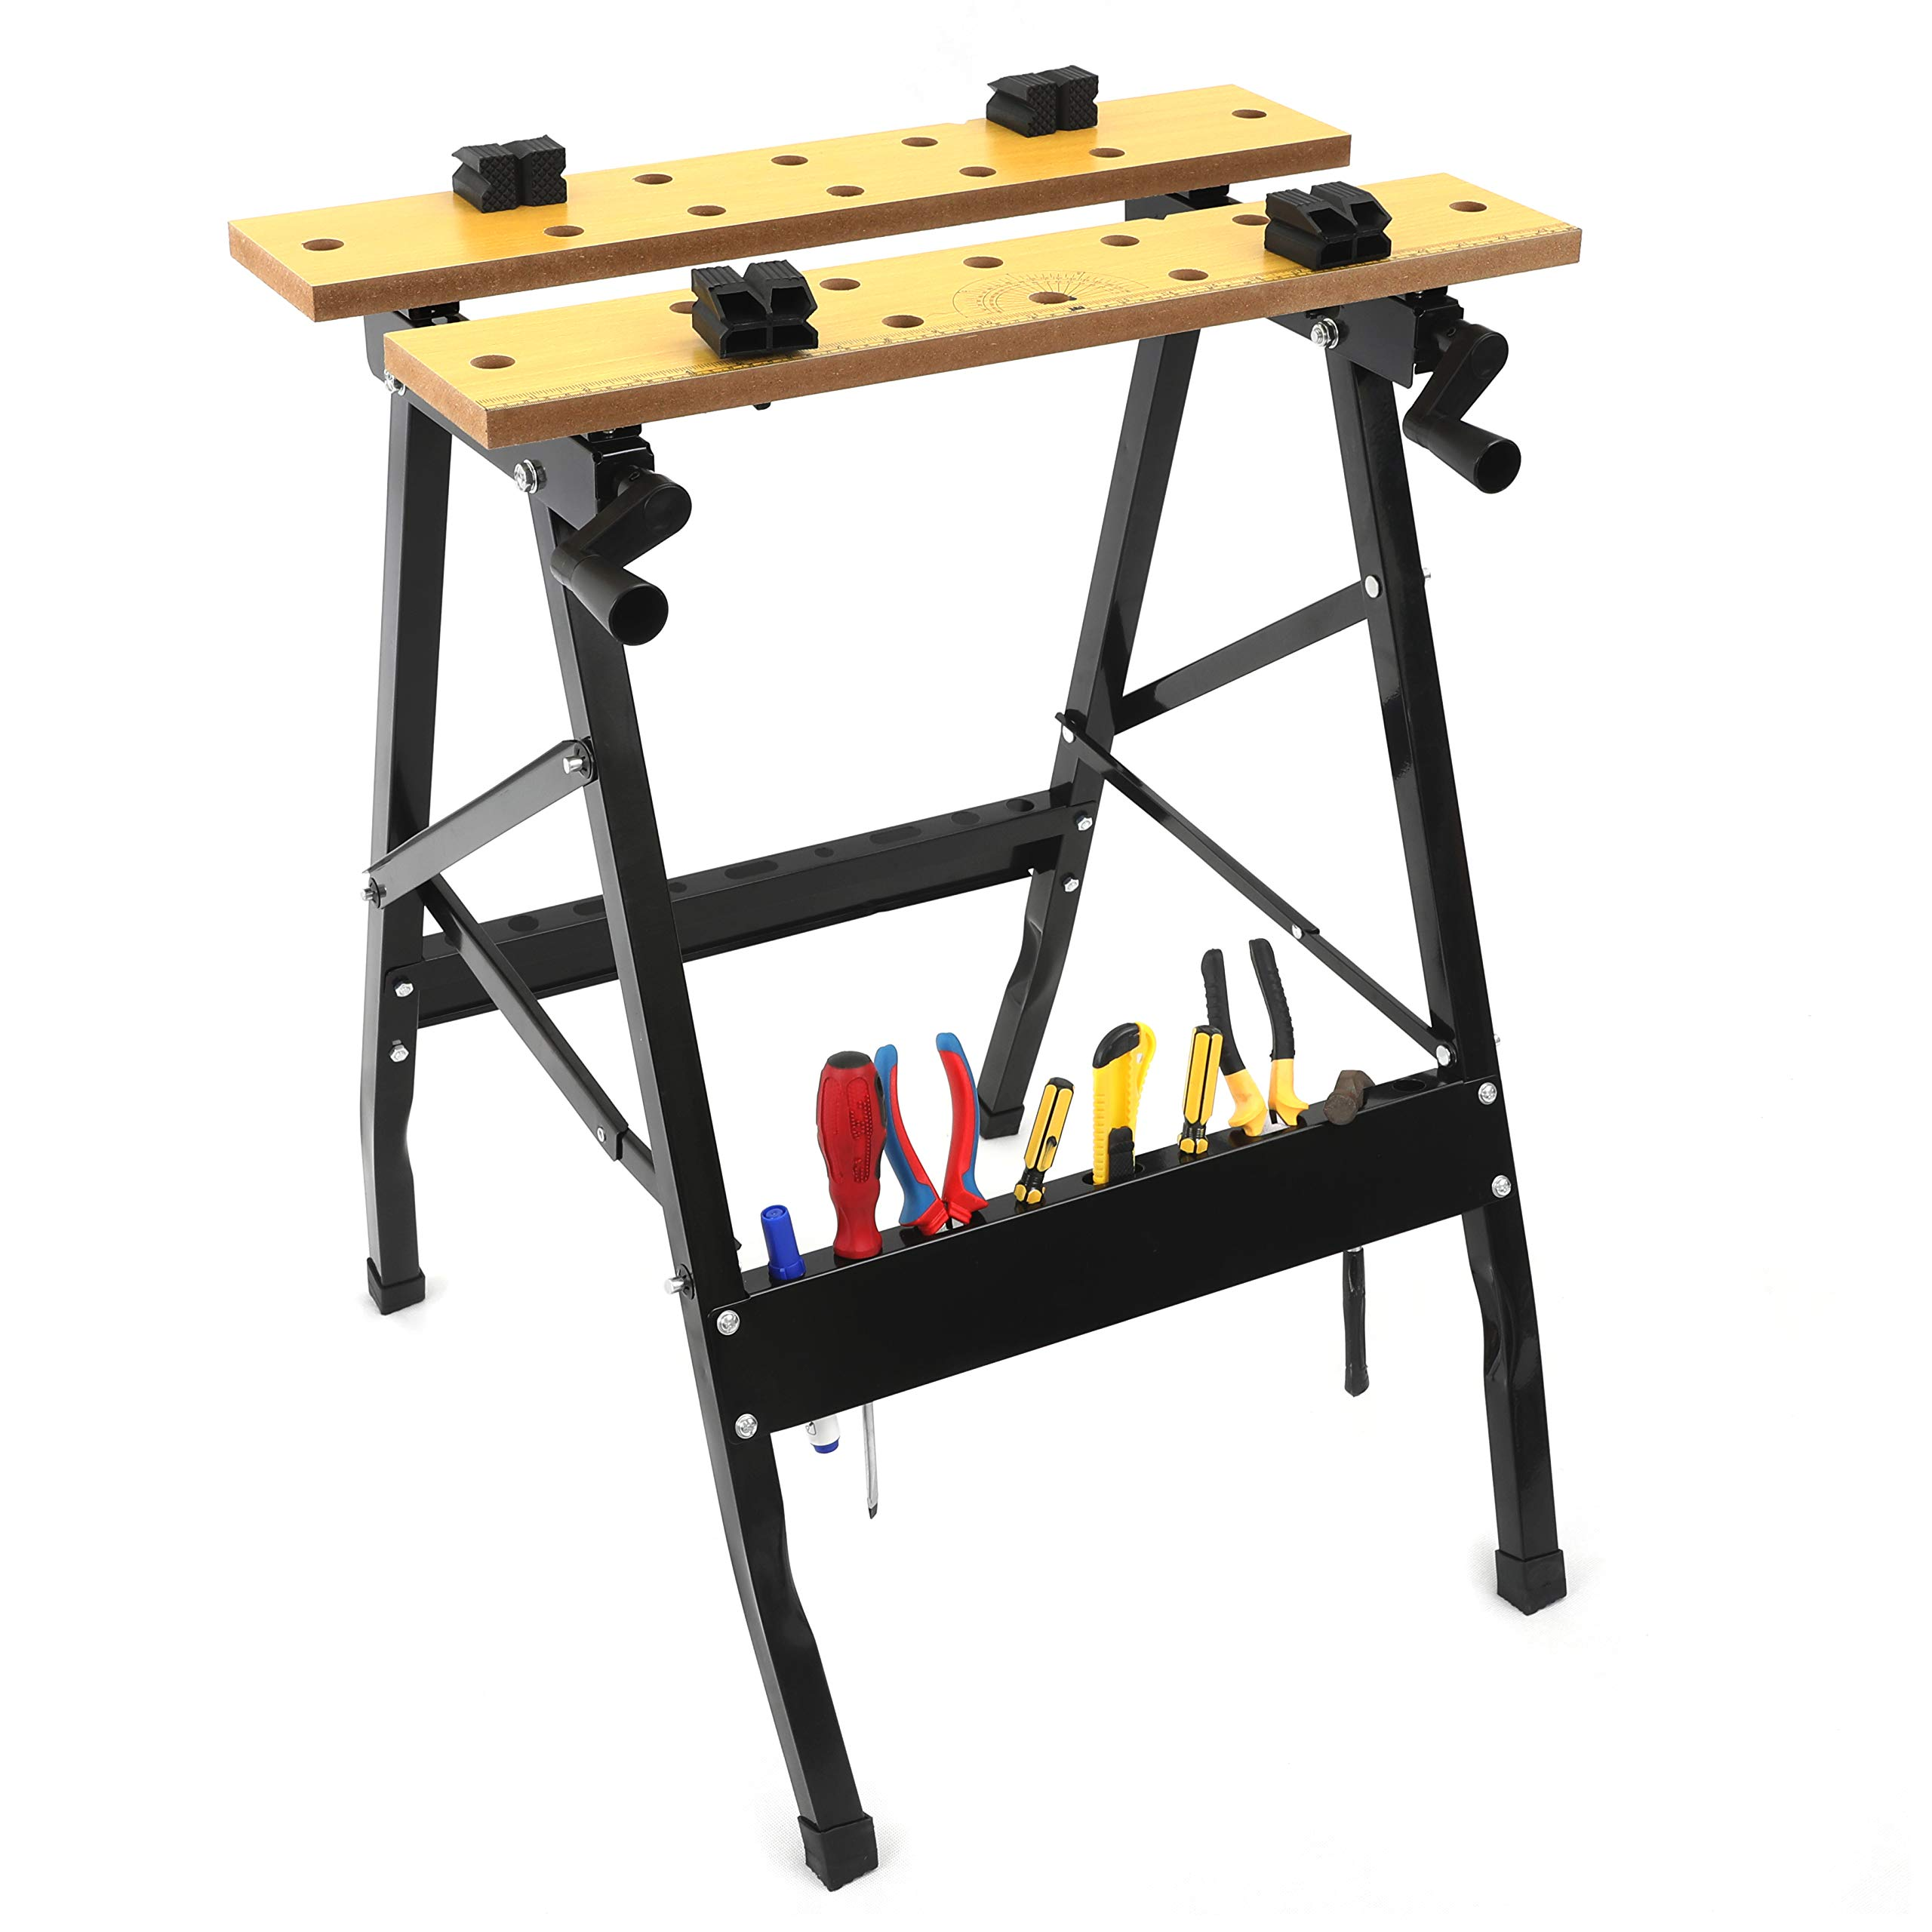 Portable Work Bench Multipurpose Folding Repair Tools Table w/Clamp Vise and Tool Holder 220 LBS Capacity